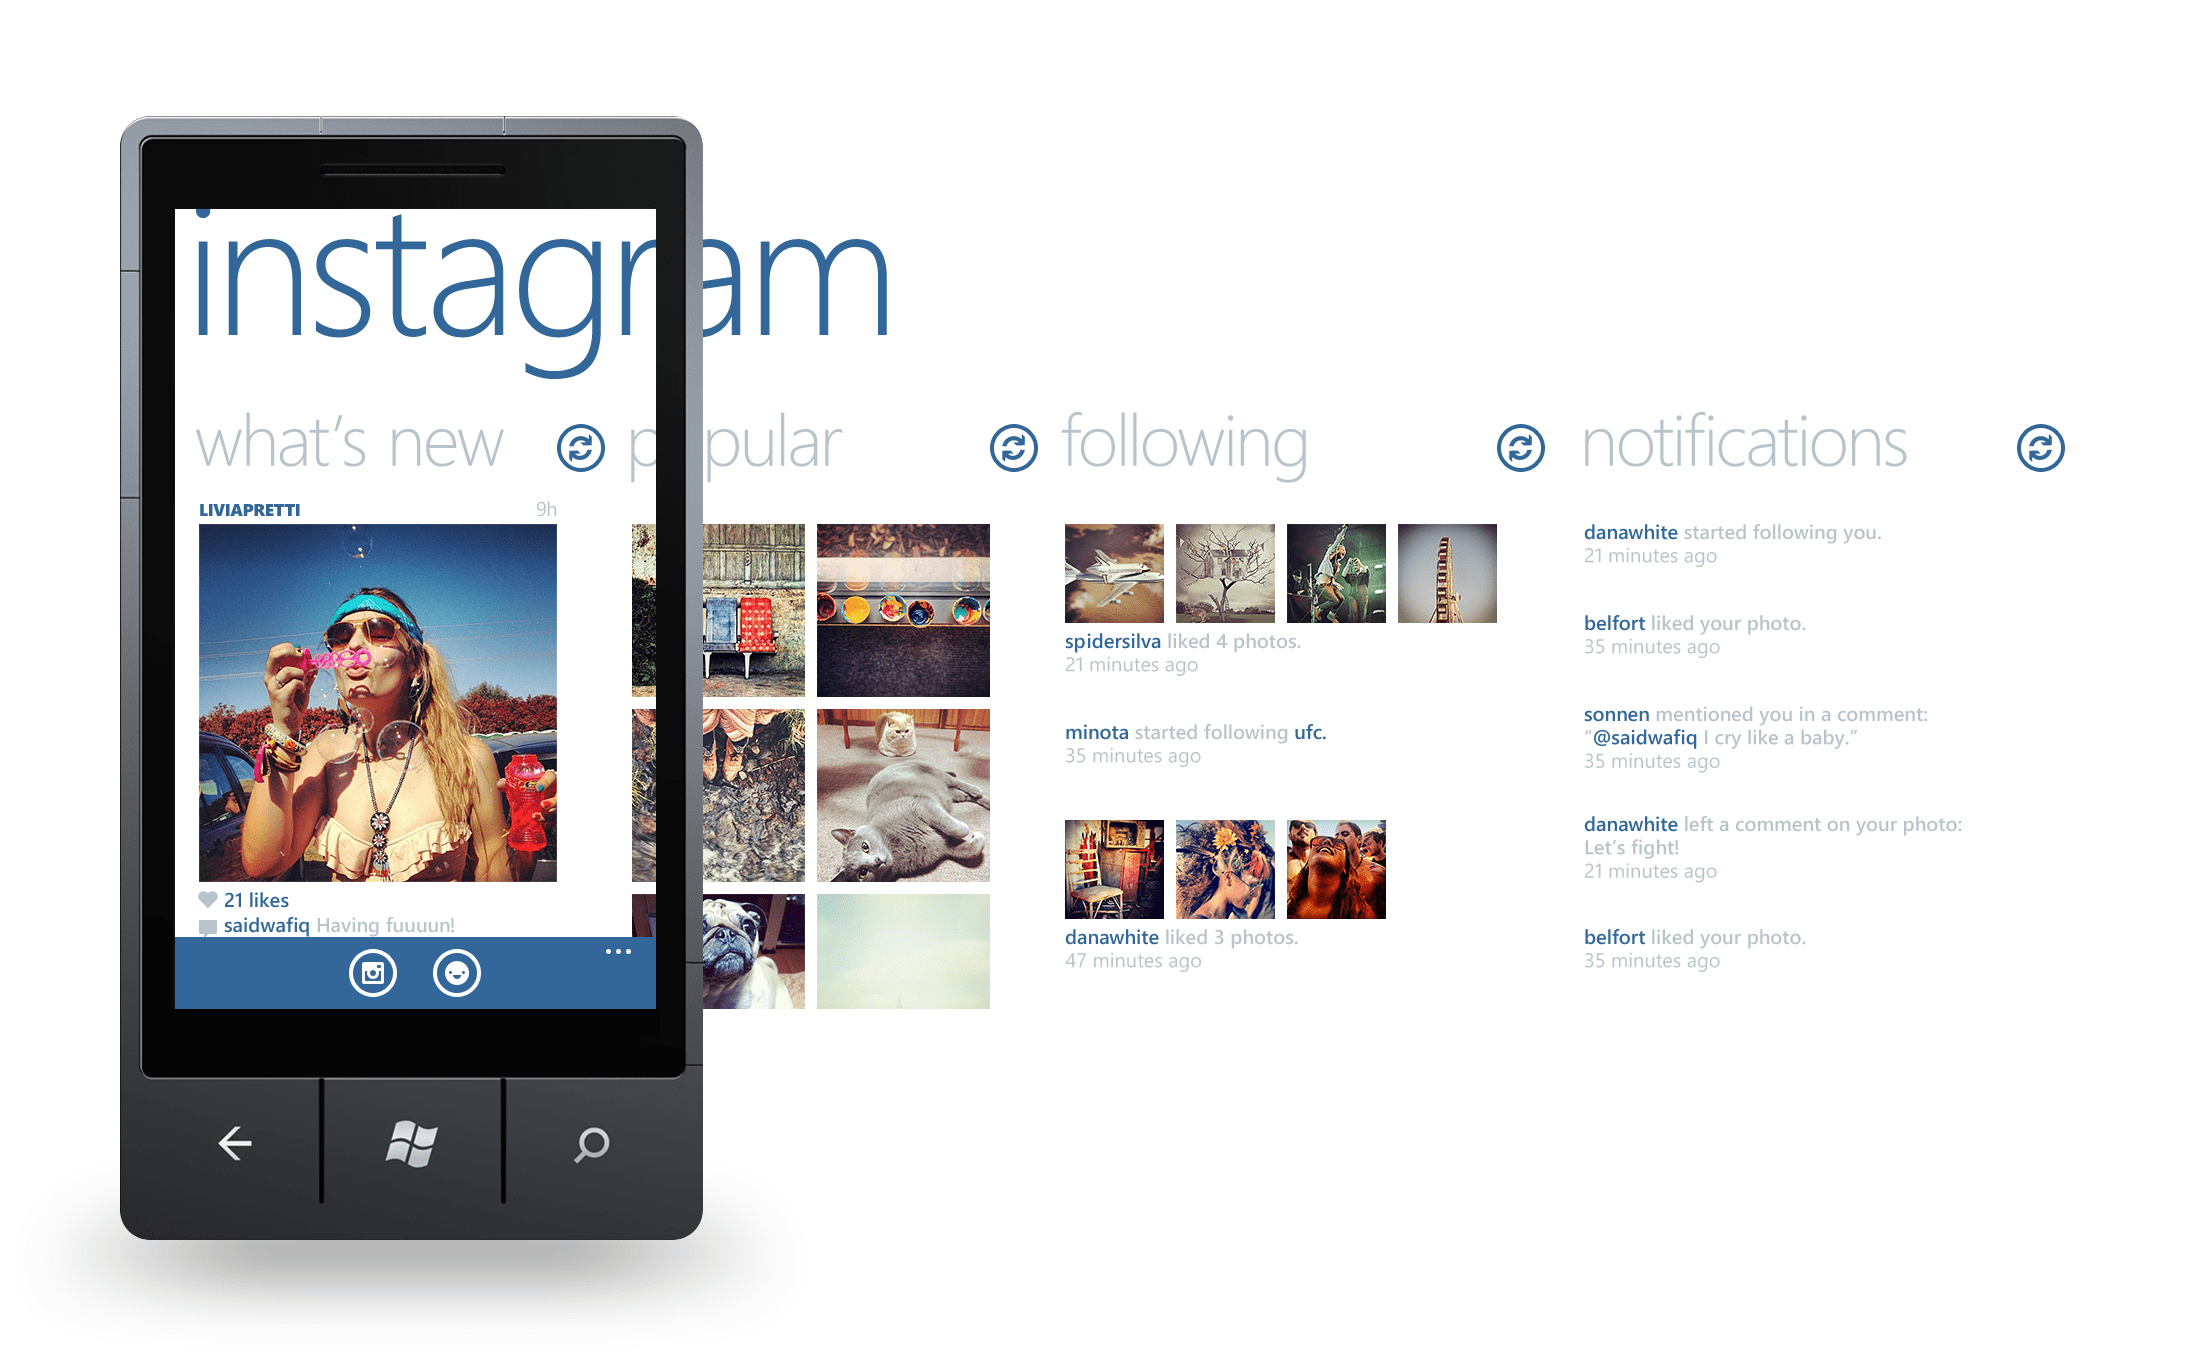 Instagram app per Windows Phone